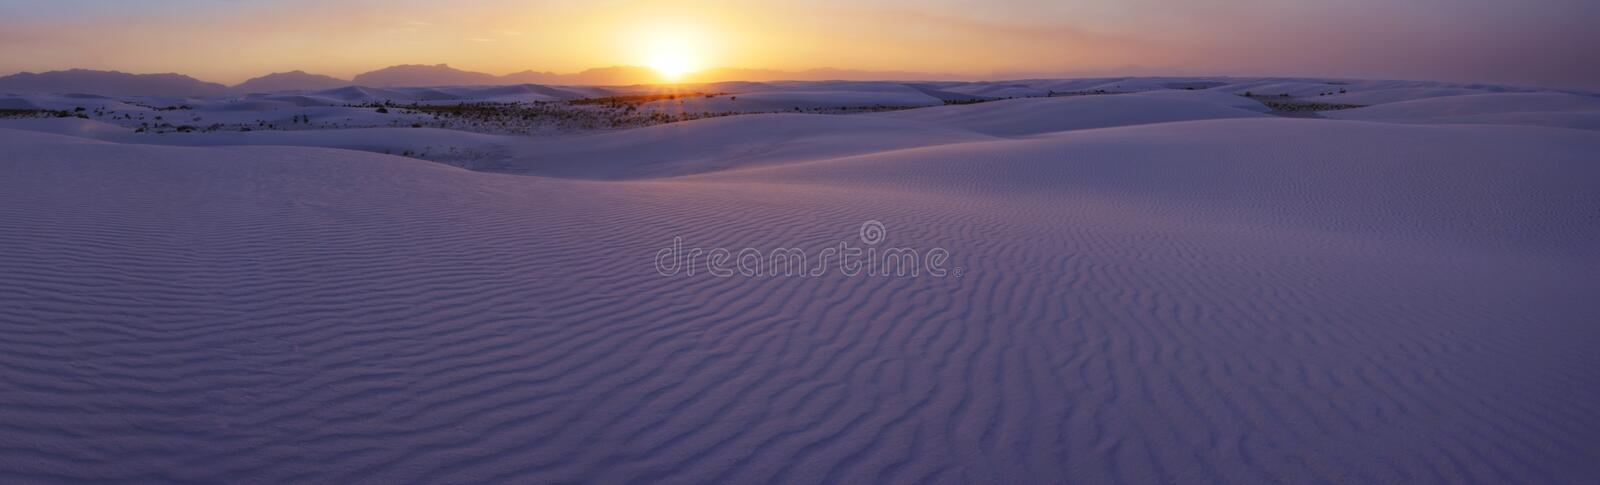 Sunset over the White Sands of New Mexico stock photos